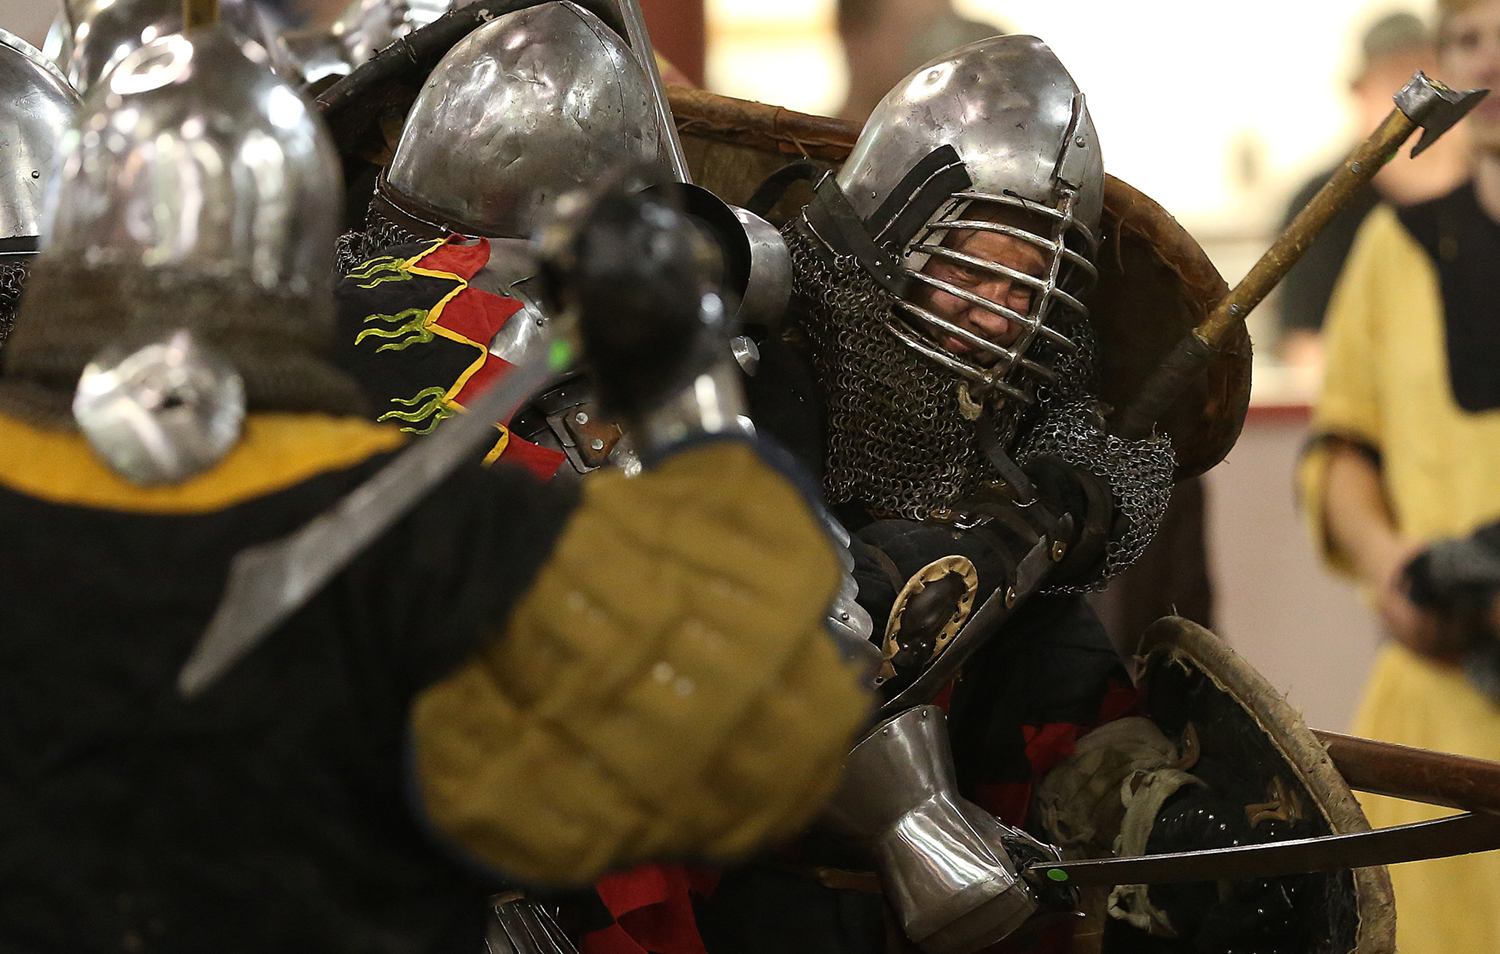 A close-up during one of the battles on Saturday. The Medieval battle competition Battle of the Nations International Tournament of Chivalry took place at the Livestock Center on the Illinois State Fairgrounds in Springfield on Saturday, Oct. 18, 2014. Armored sword fighters competed in the full contact sport individually and as teams from around the world for medals. David Spencer/The State Journal-Register